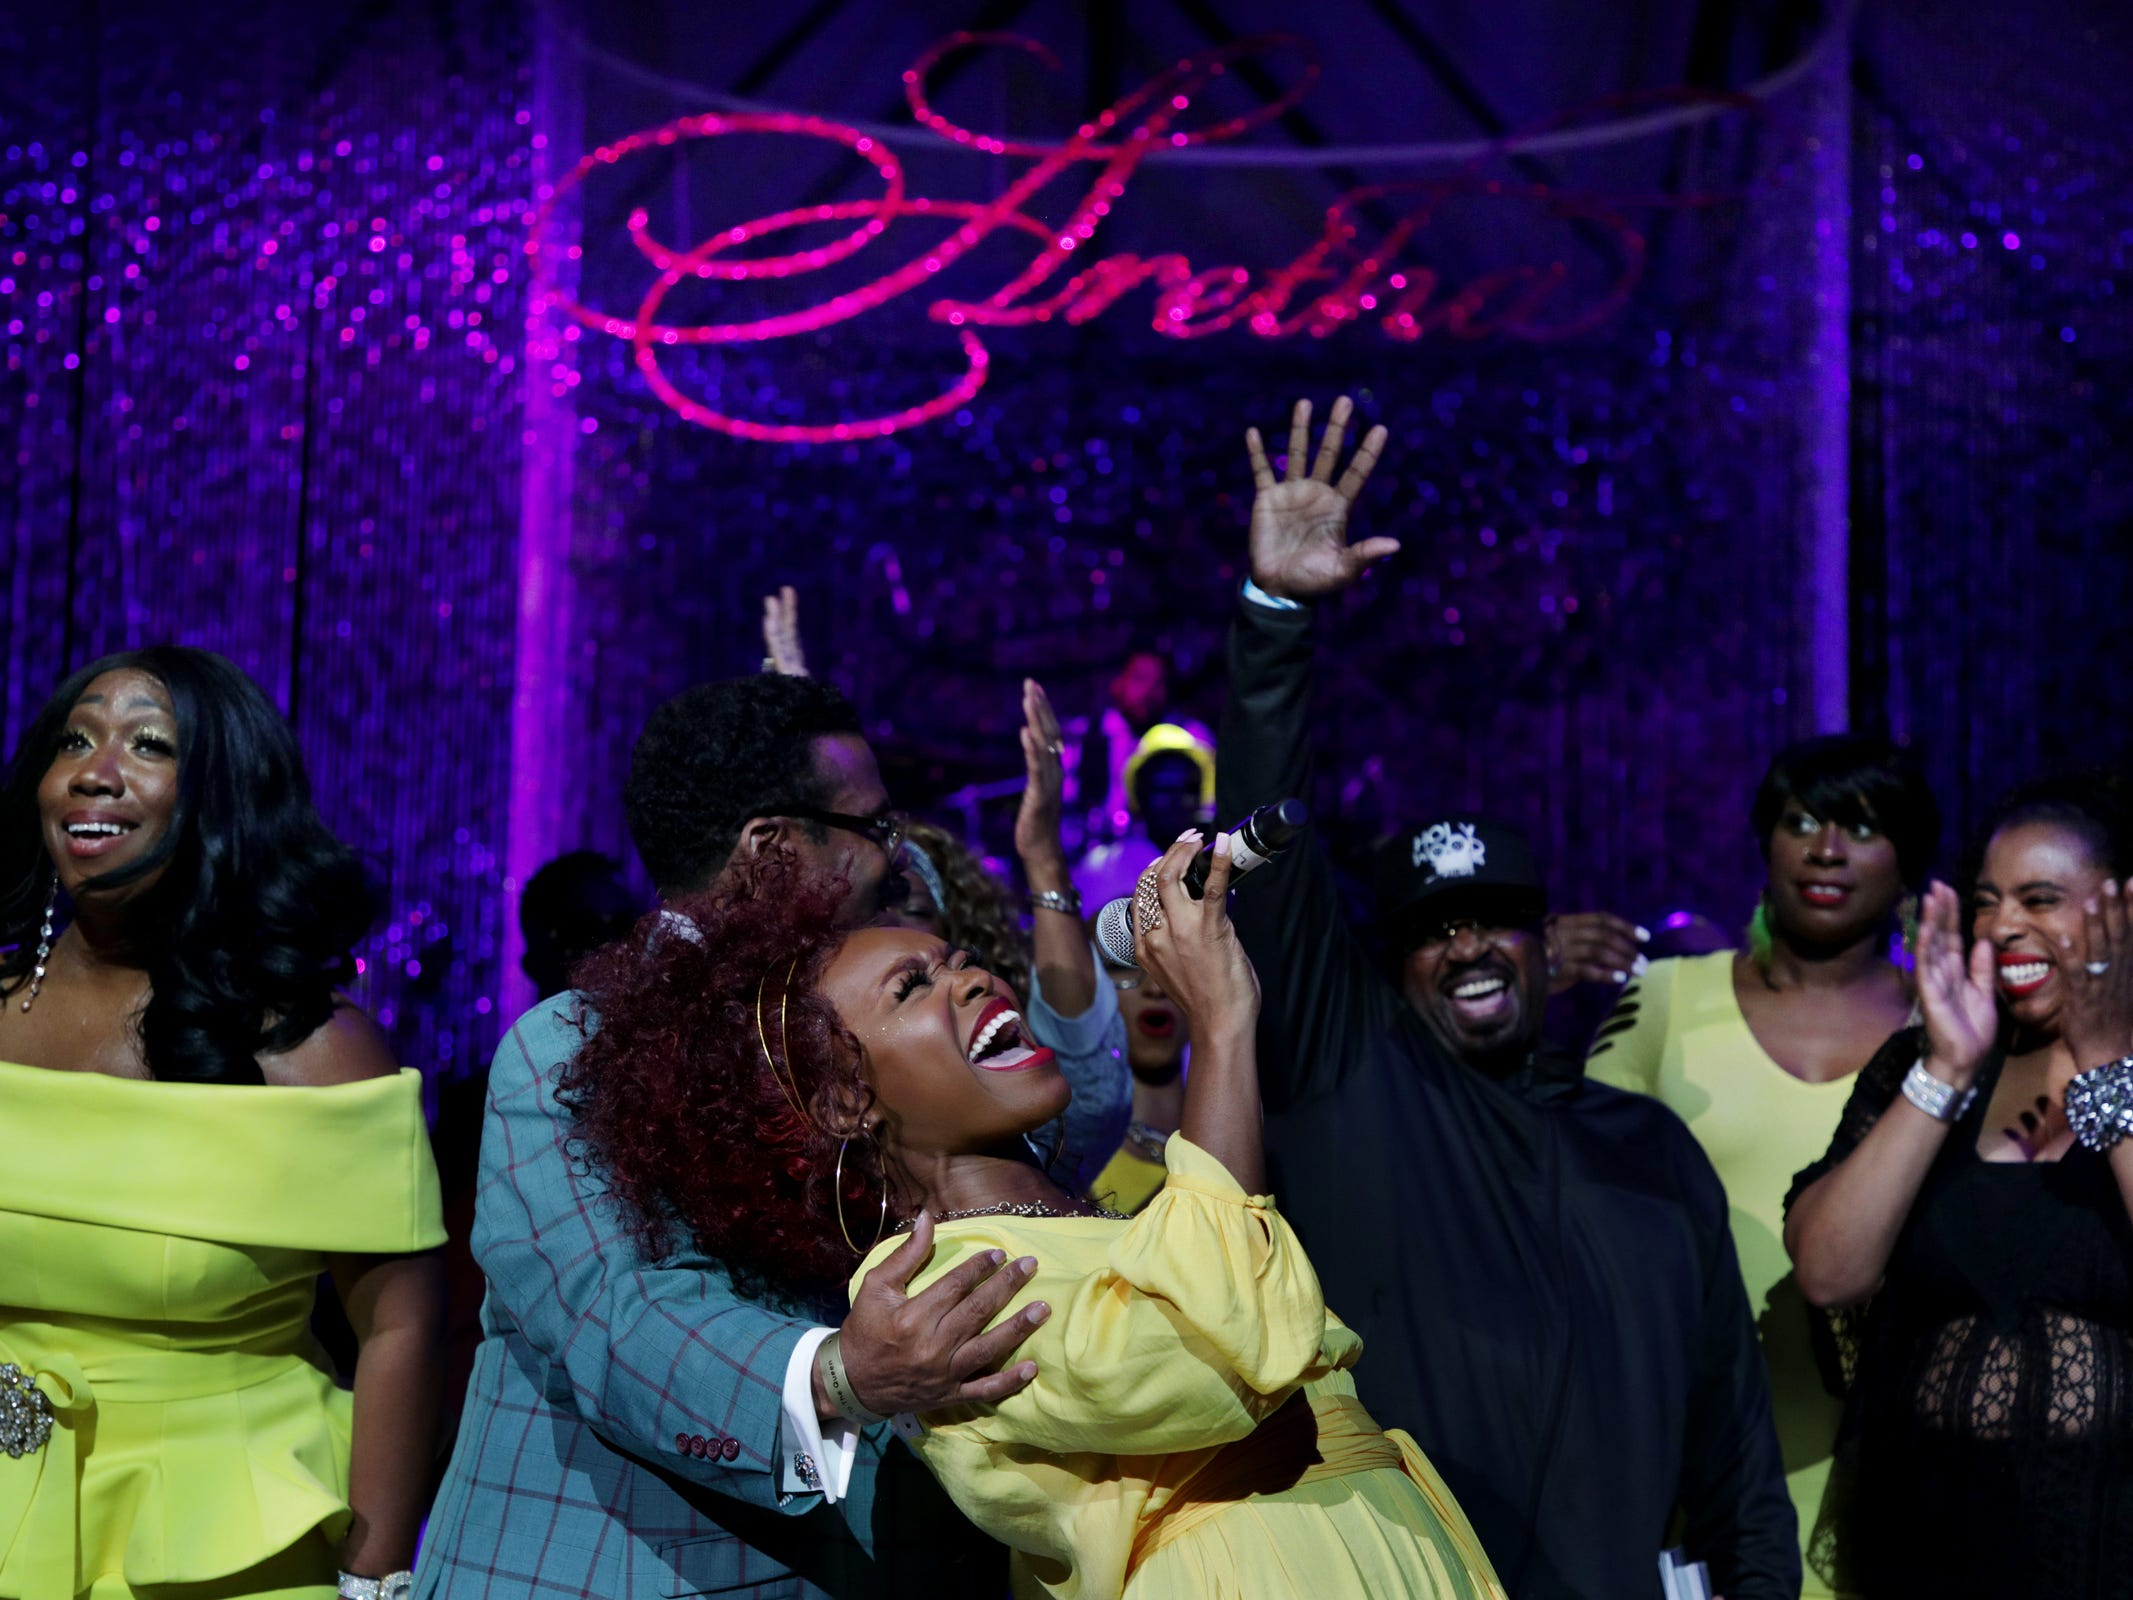 Cherri Black performs at the Aretha Franklin tribute concert at Chene Park Amphitheater in Detroit on Thursday, August 30, 2018.